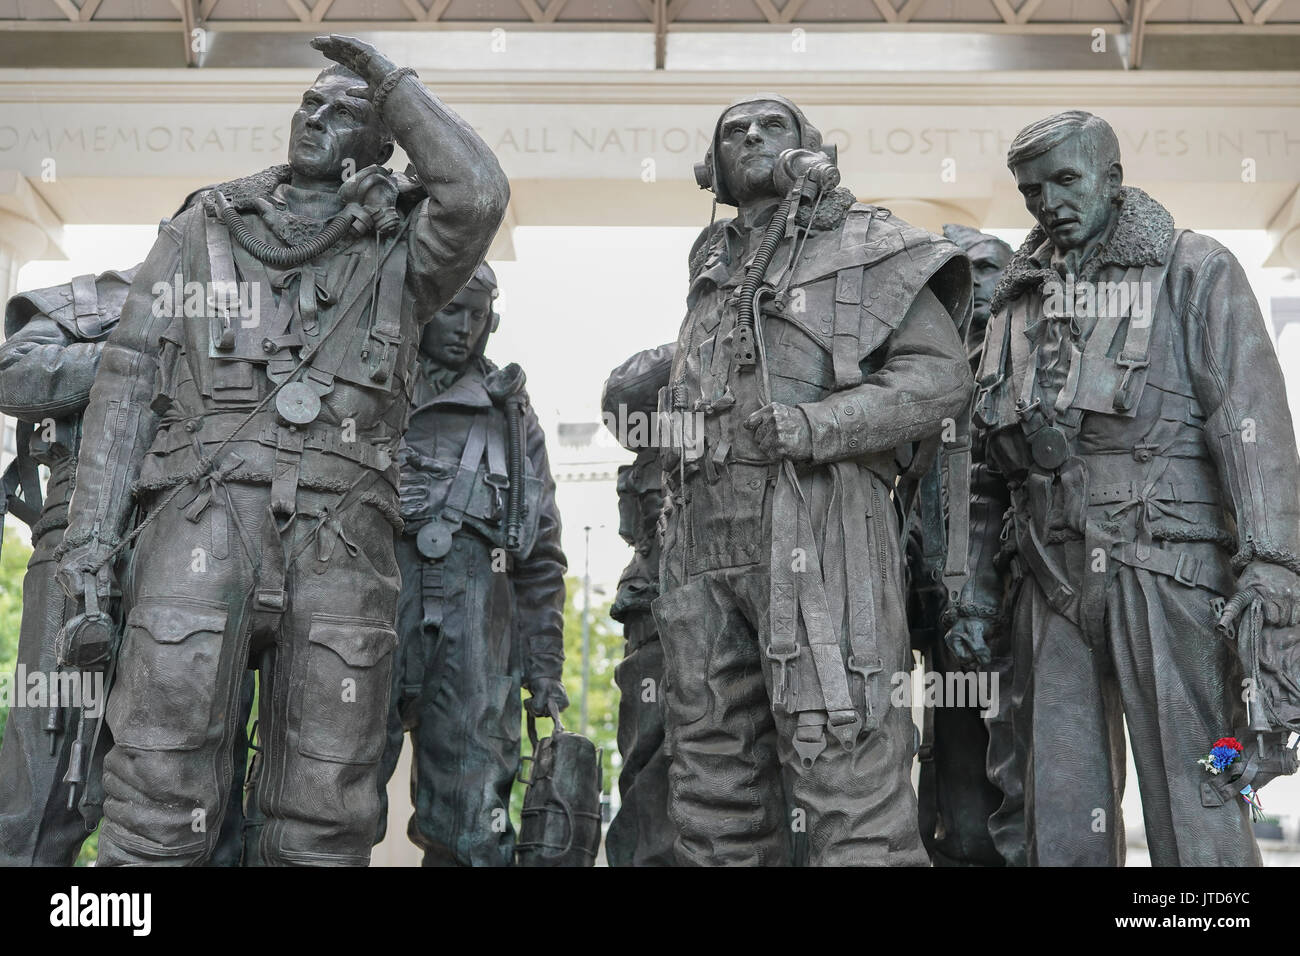 A view of The Royal Air Force Bomber Command Memorial at Hyde Park Corner commemorating the crews of RAF Bomber Command during the second world war. P - Stock Image